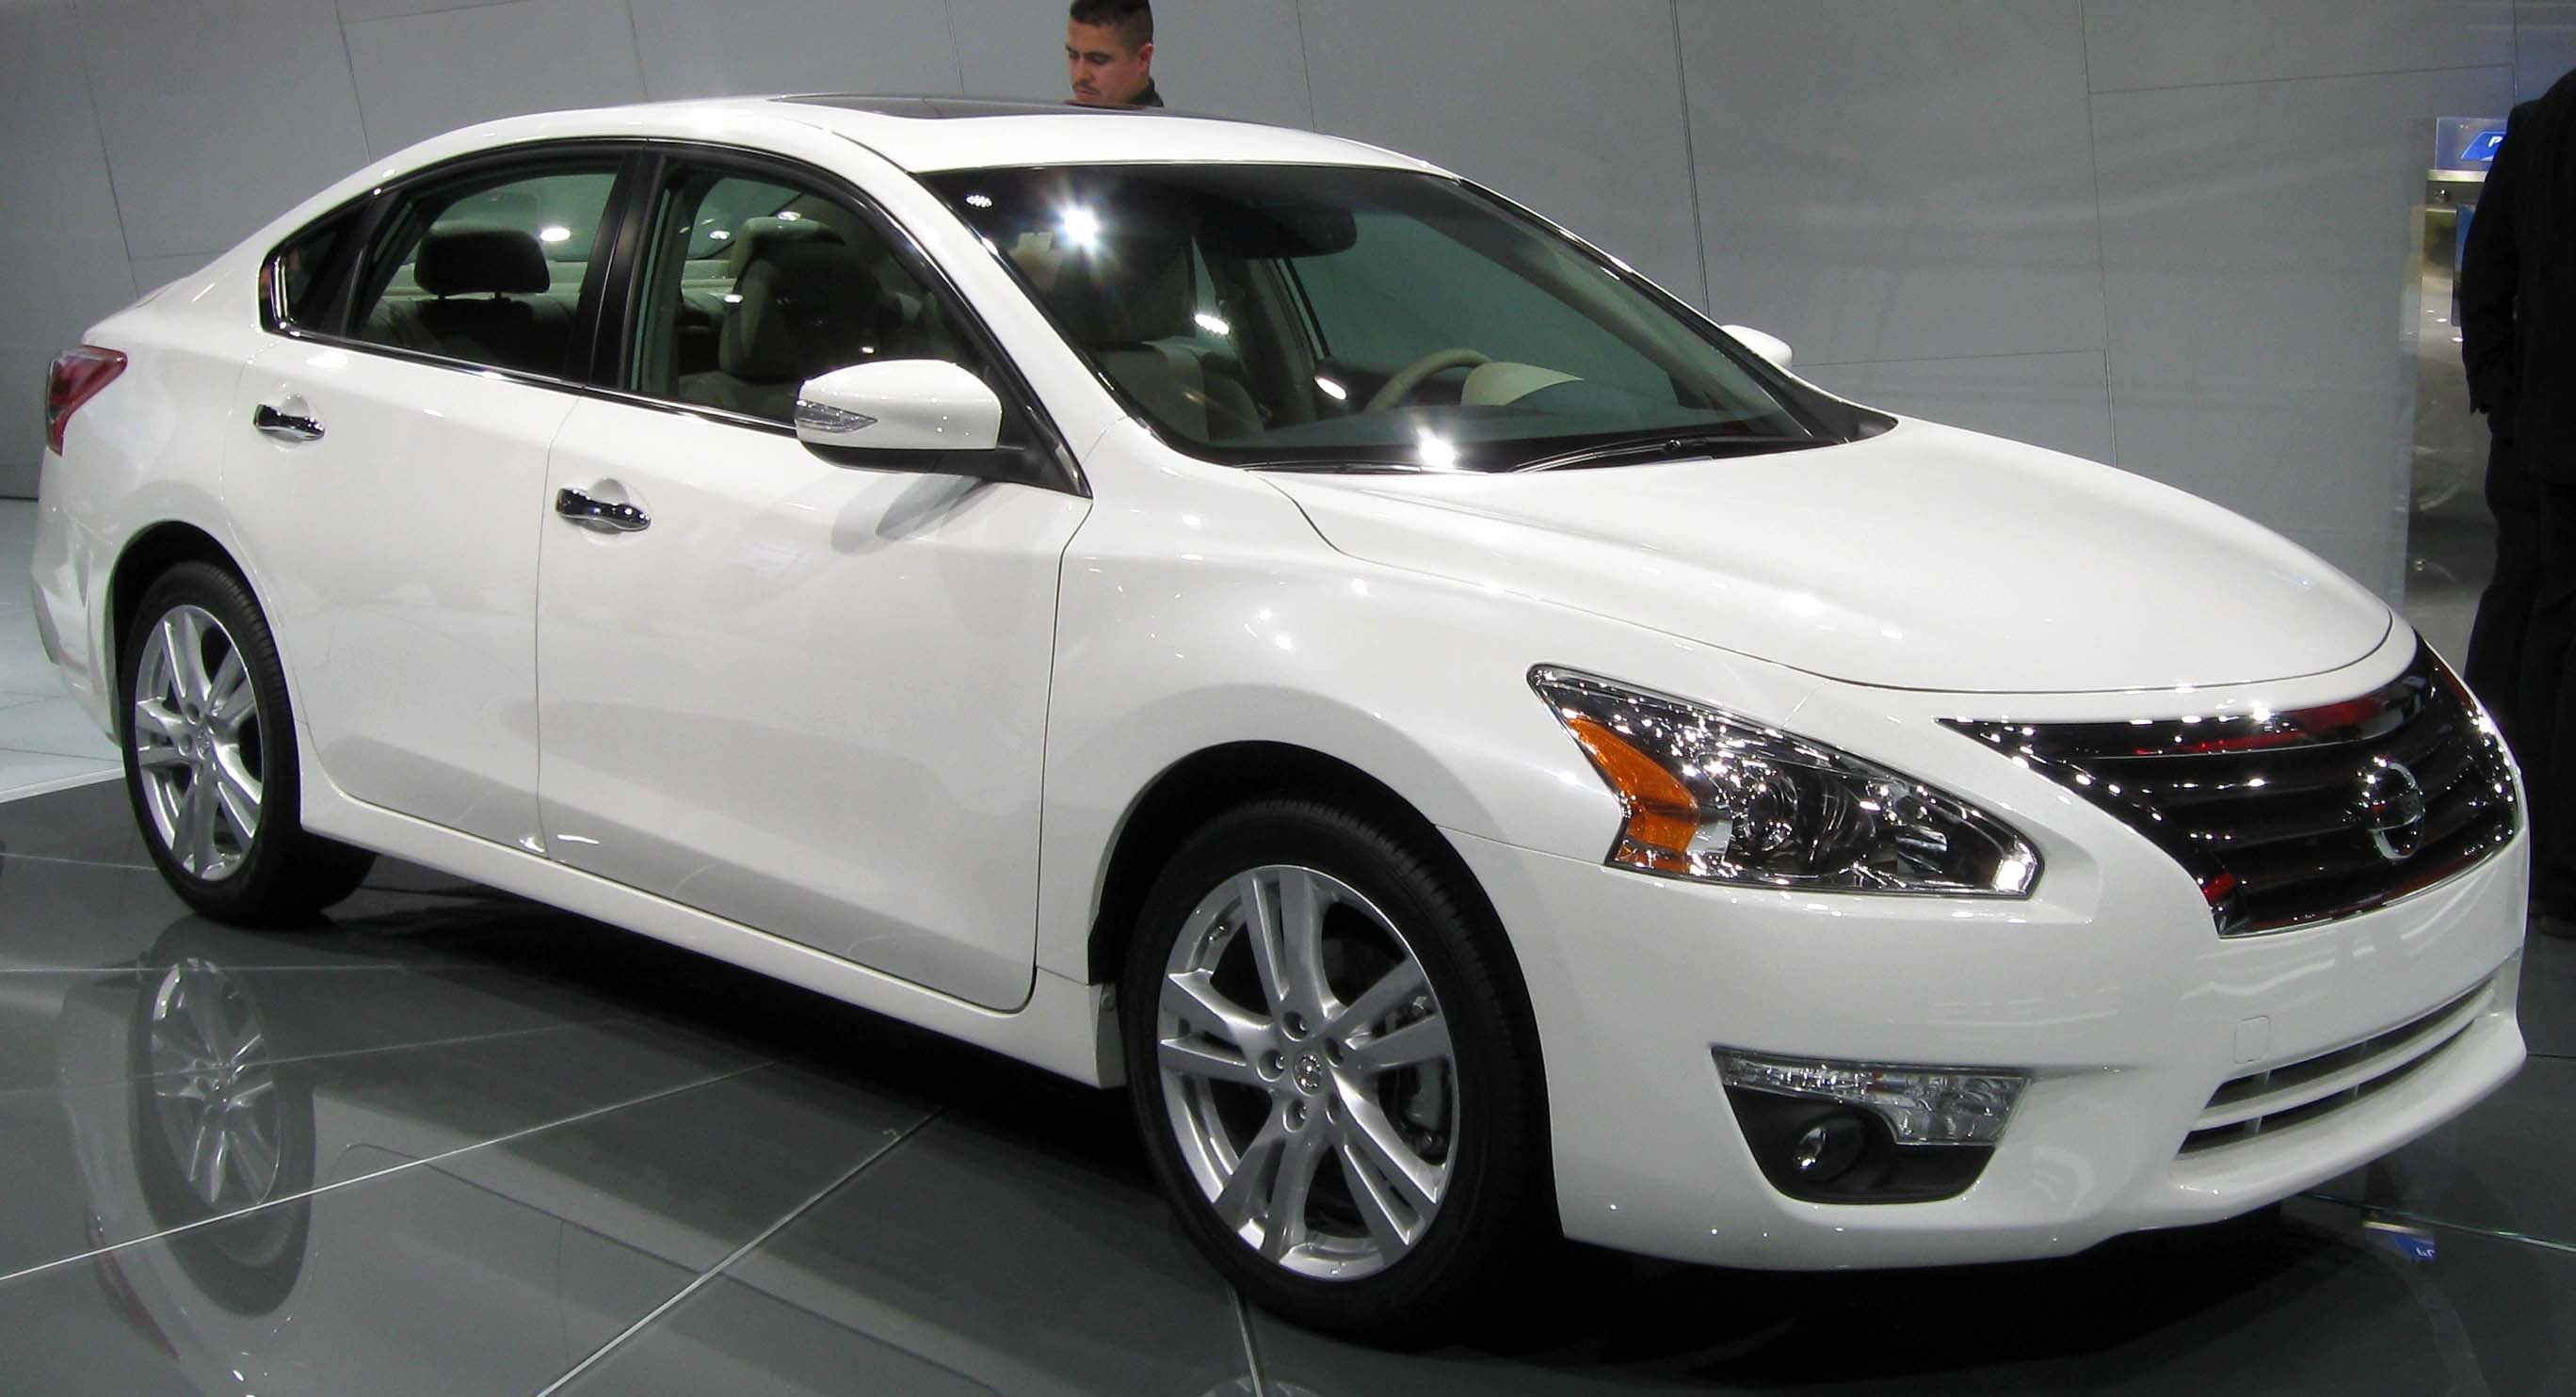 nissan altima images #1